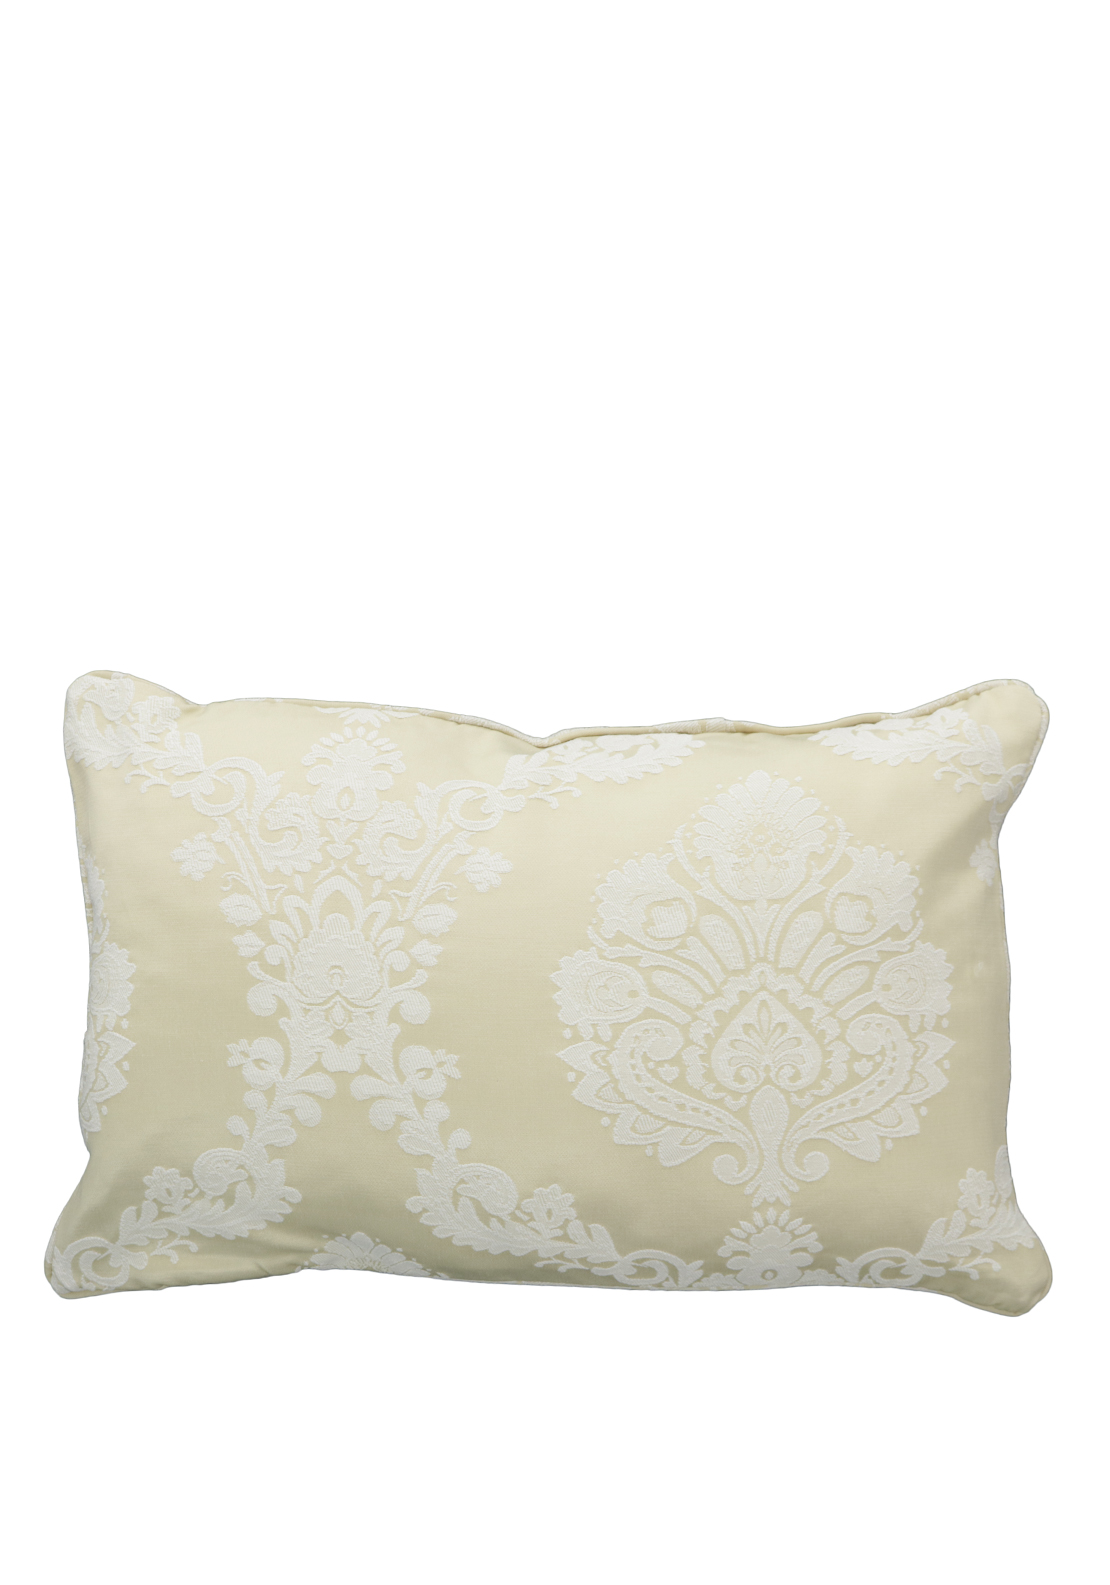 Christy Romeo Brocade Print Cushion, Gold